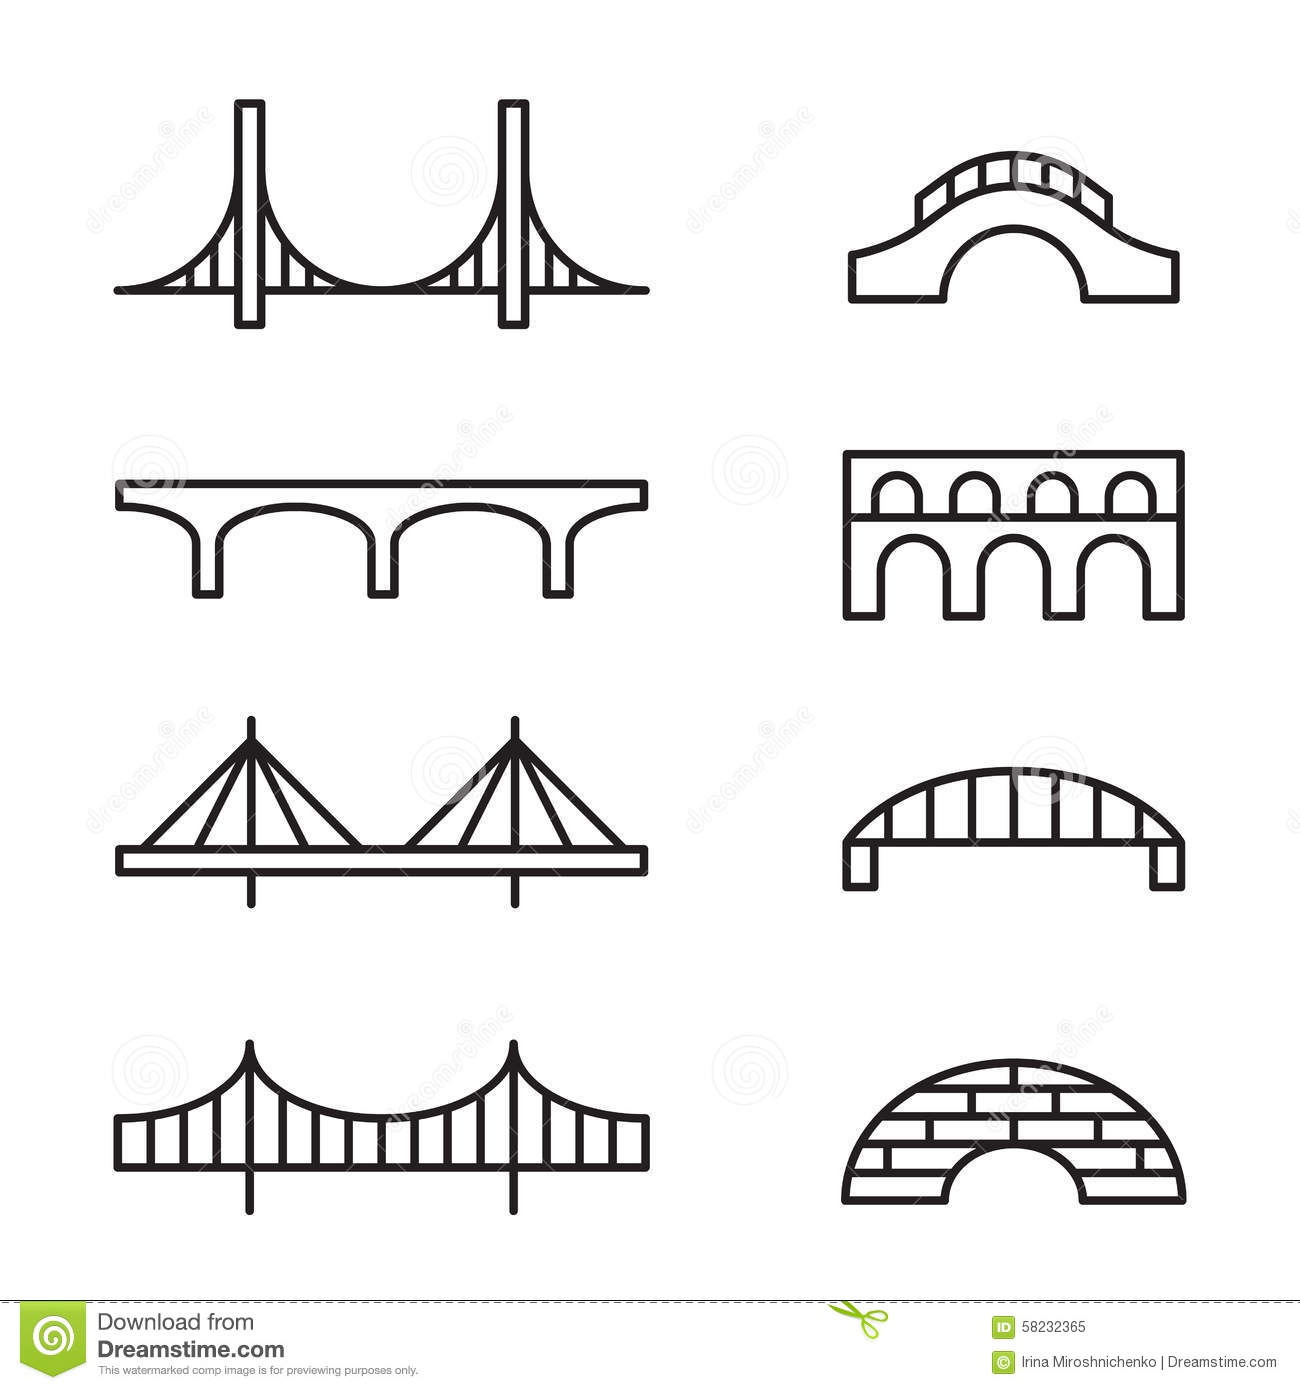 Bridge Icons Stock Vector Illustration Of Simple Design